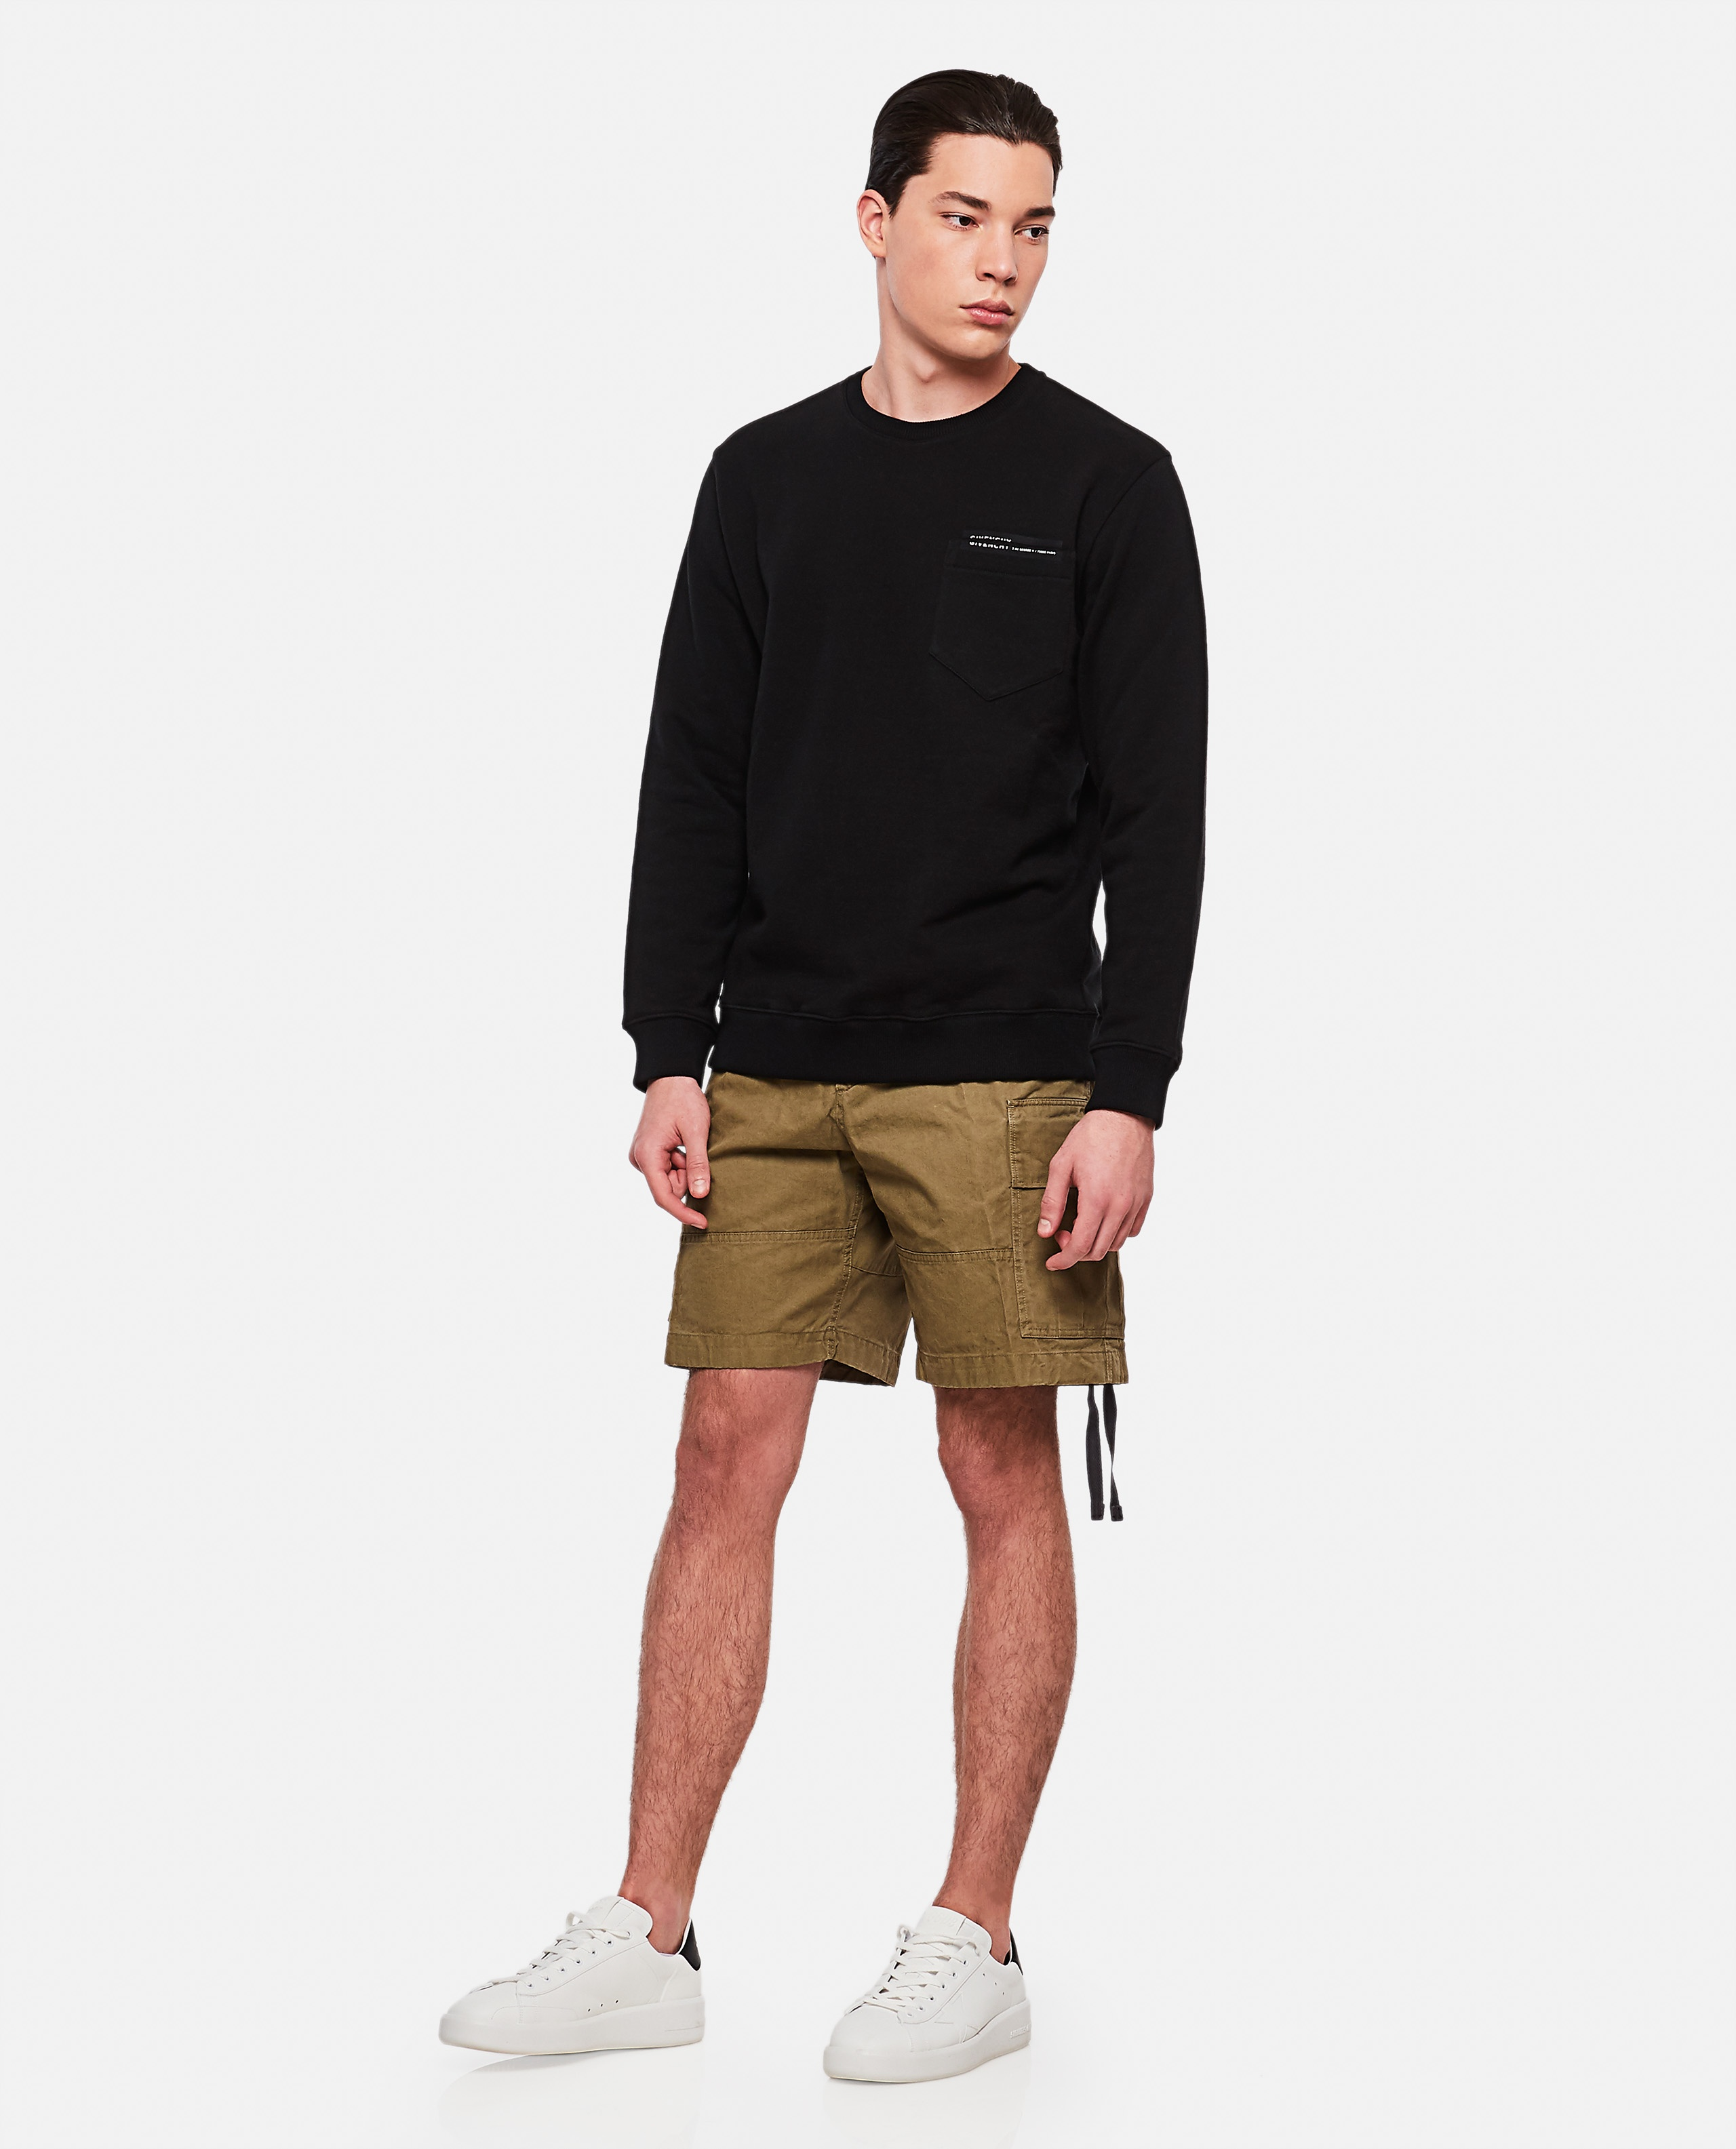 4G sweater Men Givenchy 000226470033486 2